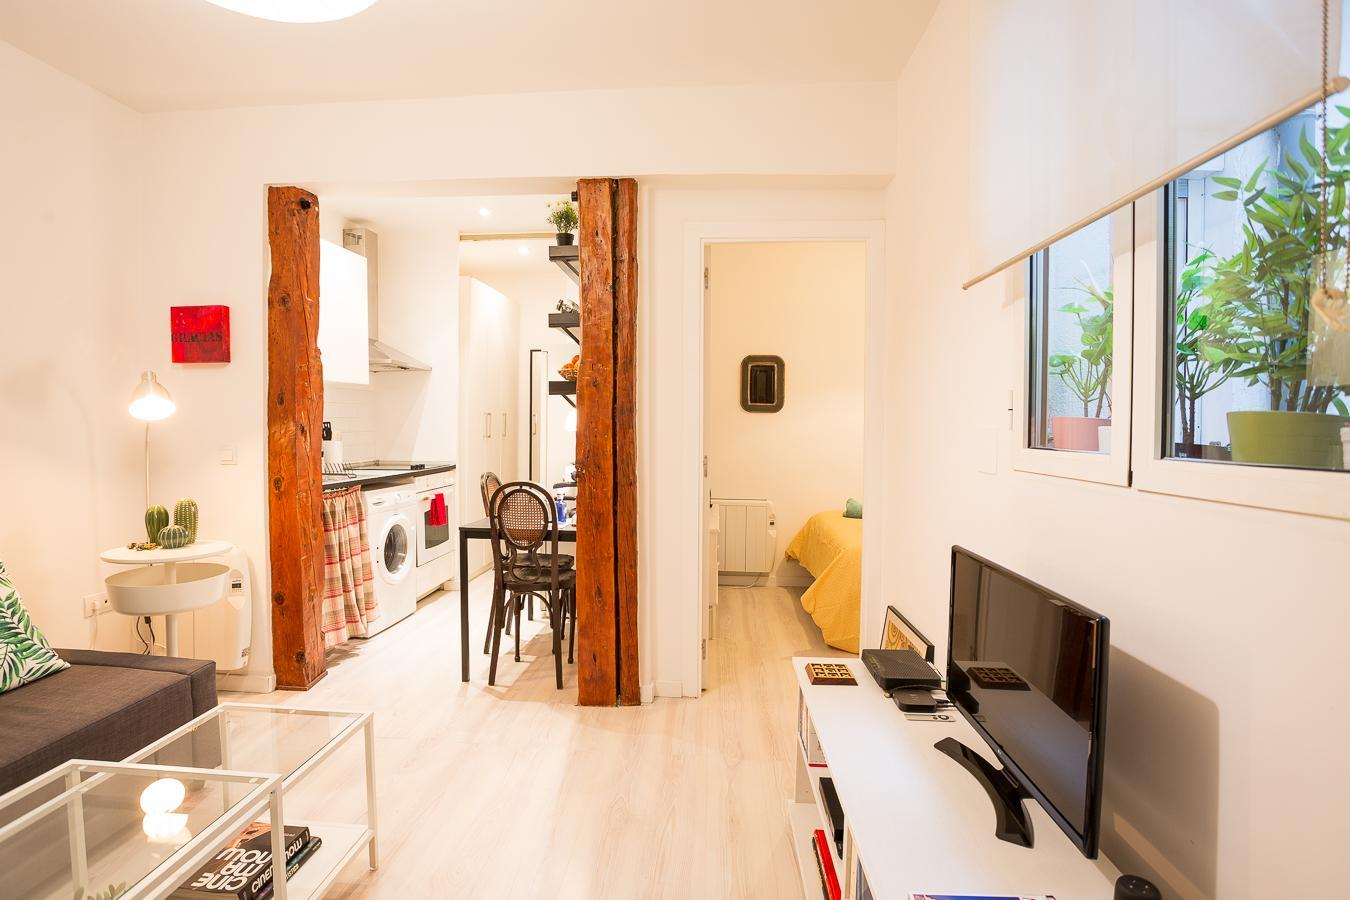 BEAUTIFUL APARTMENT WITH GOOD LOCALIZATION